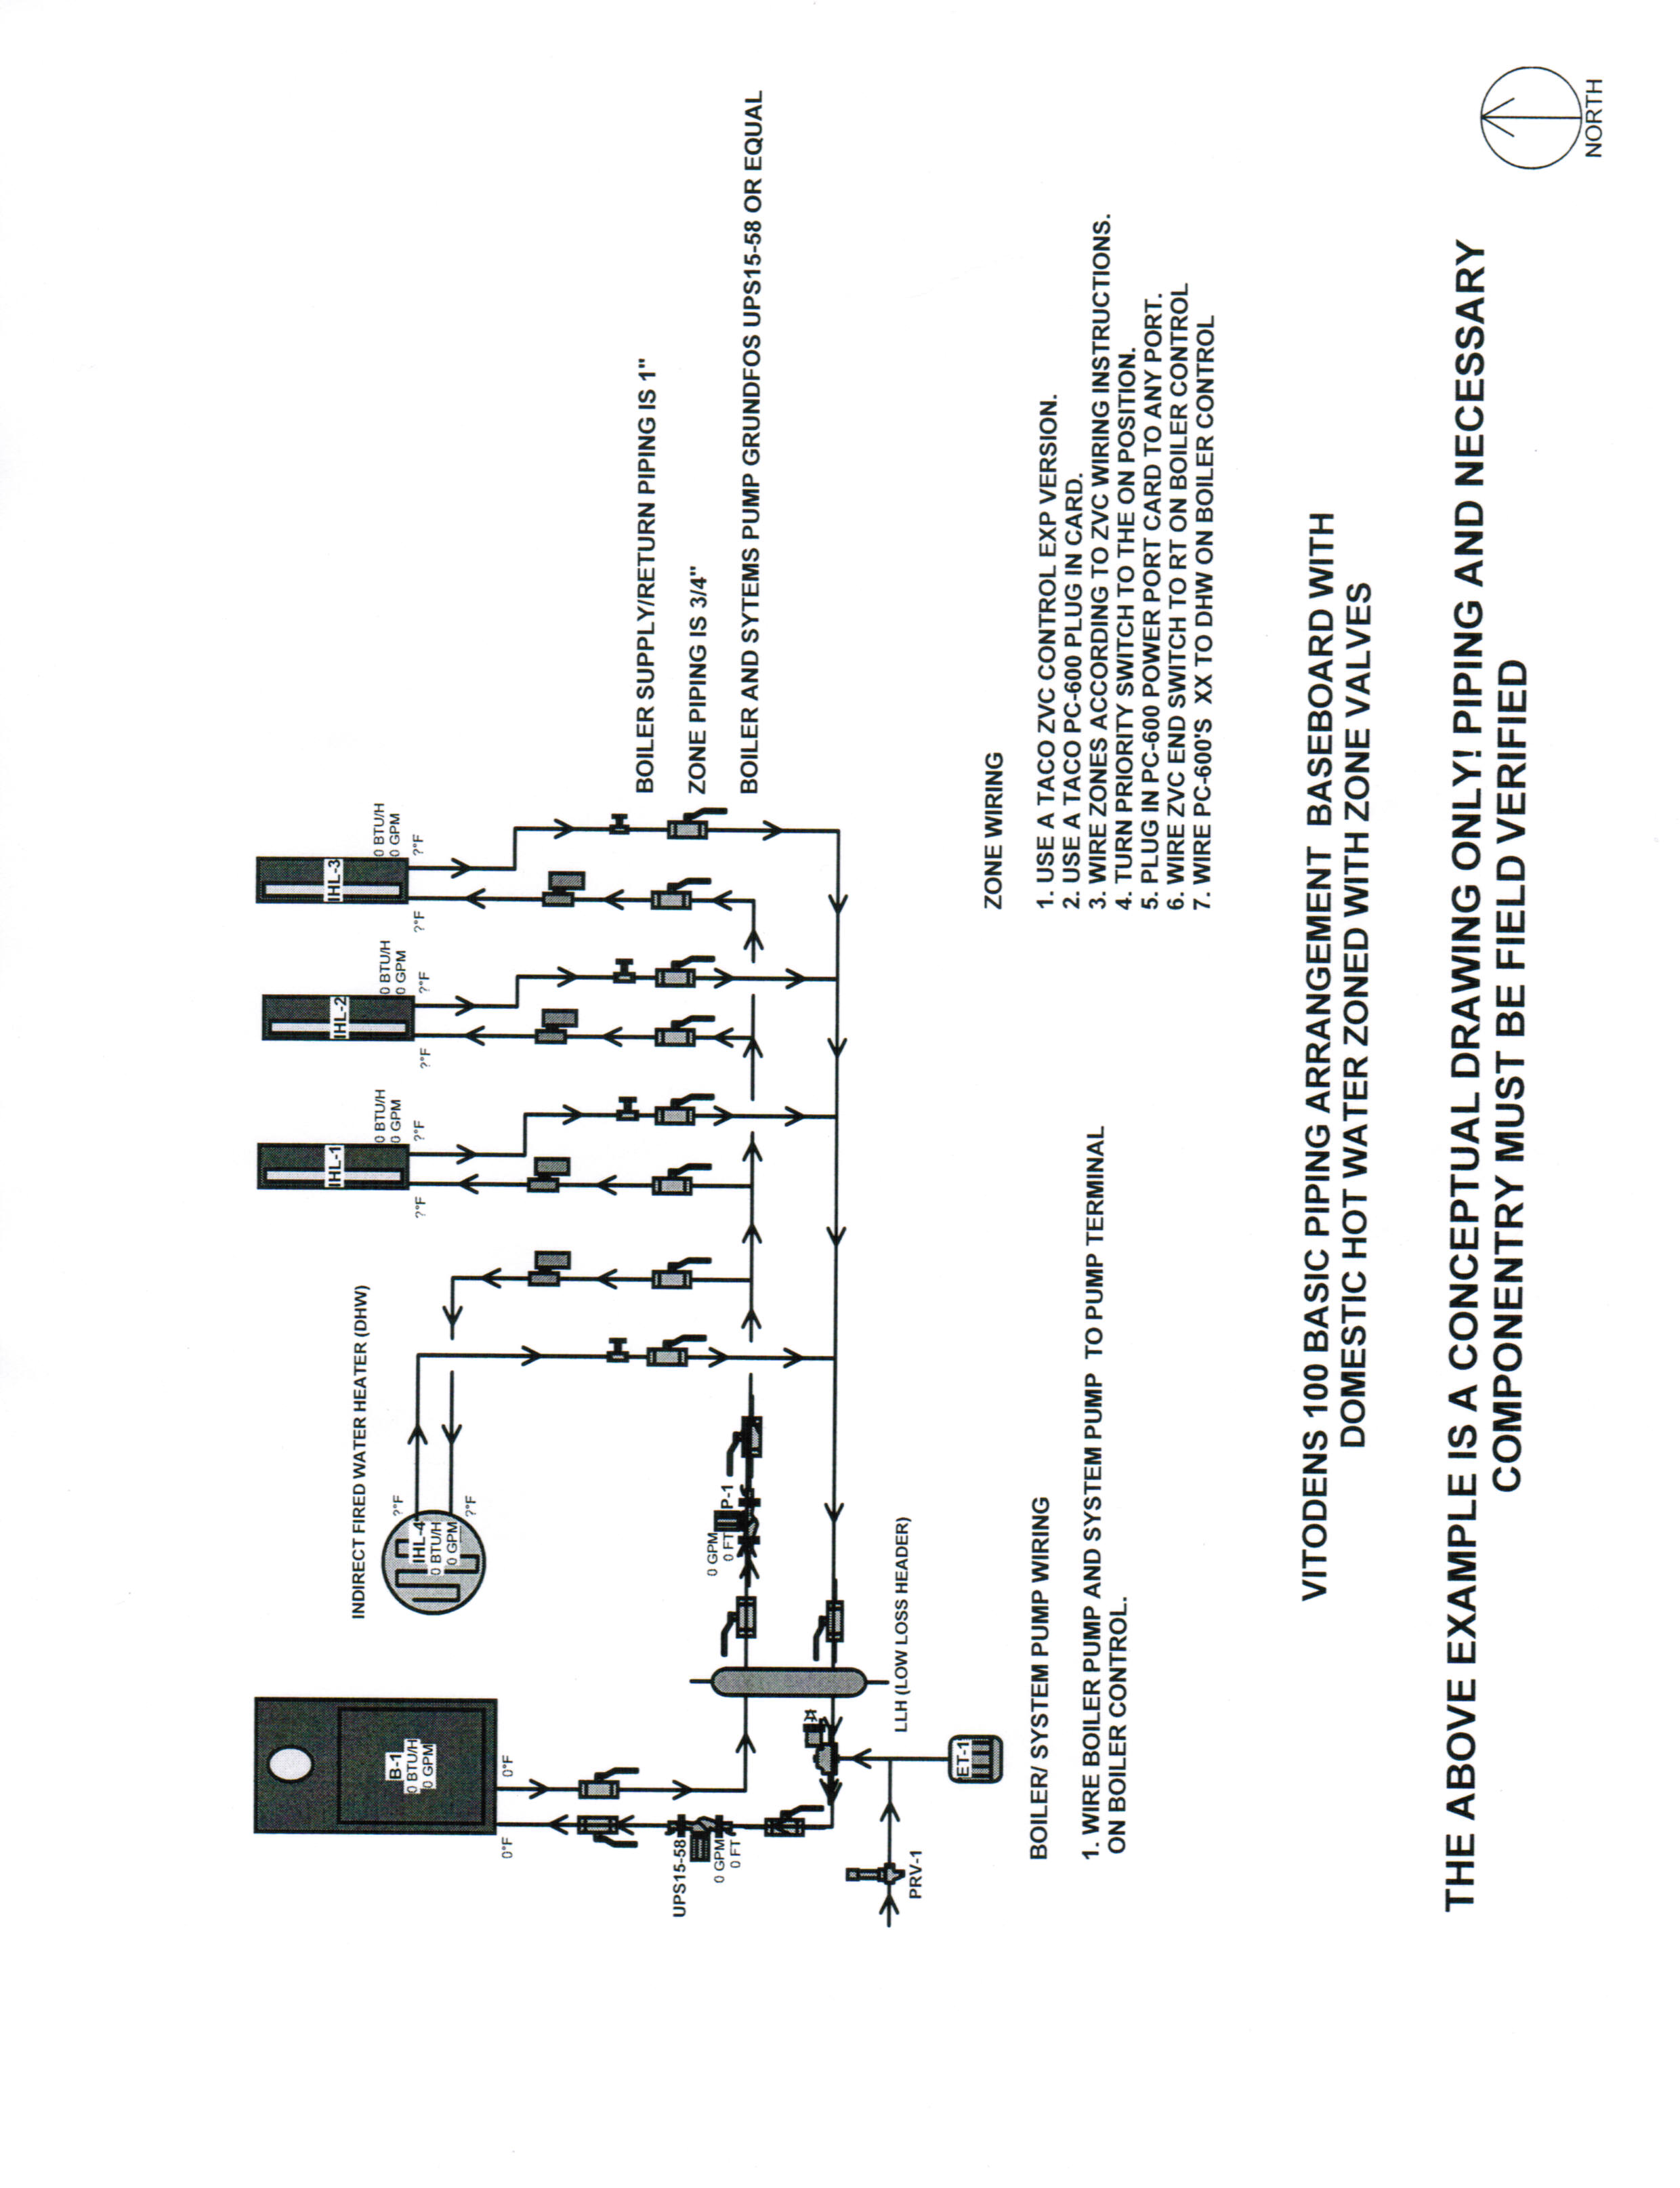 Wiring Grundfos Pump Stage 3 Wire Data Schema \u2022 Wiring For Submersible  Well Pump Grundfos Ms 402 Wiring Diagram